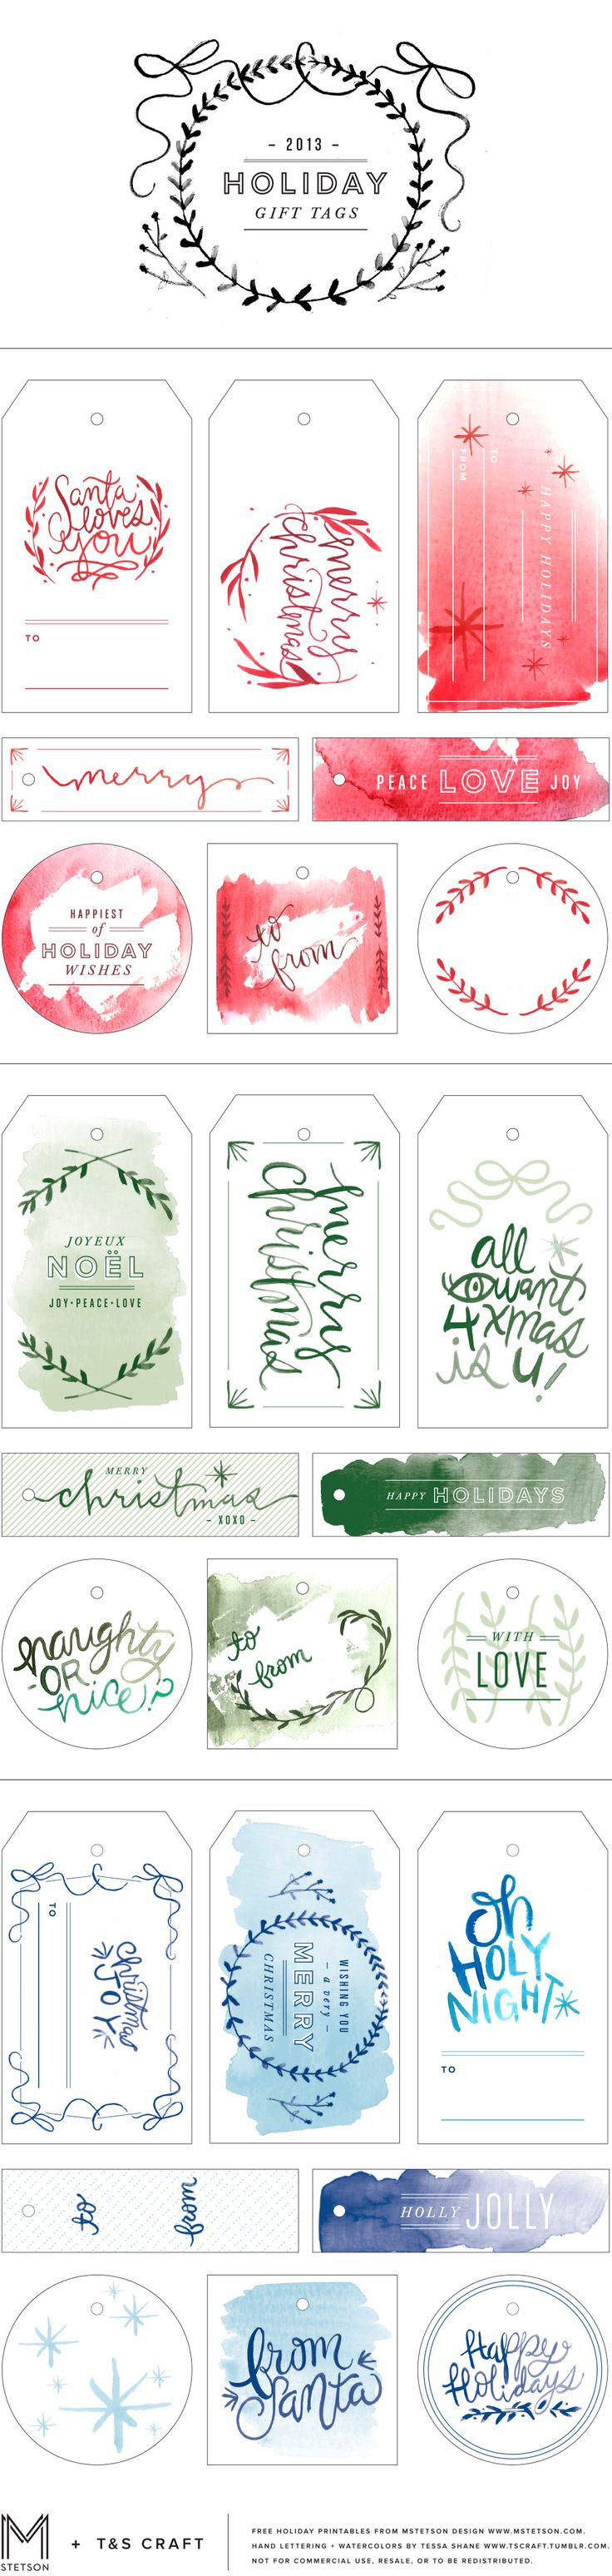 free watercolor holiday christmas gift tag printables downloadable / mstetson design and t&s